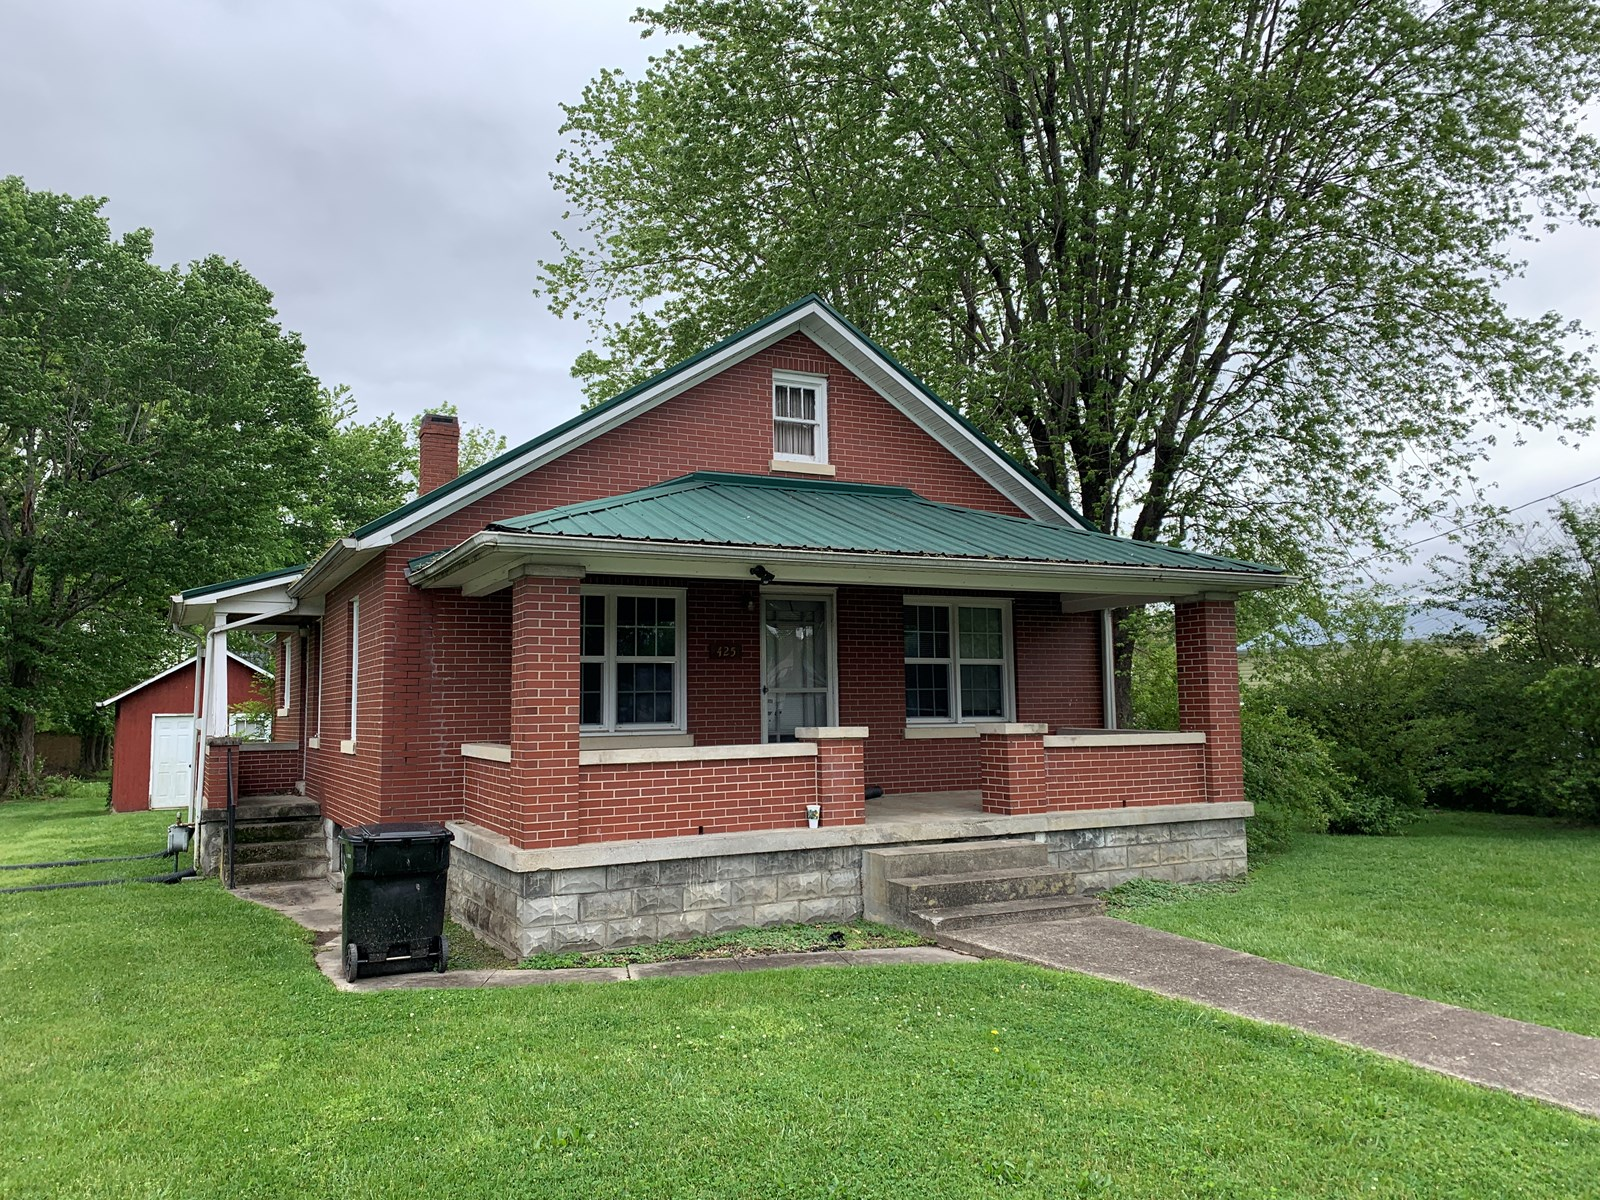 BRICK HOME IN TOWN - BASEMENT - GOOD LOCATION - LIBERTY, KY.